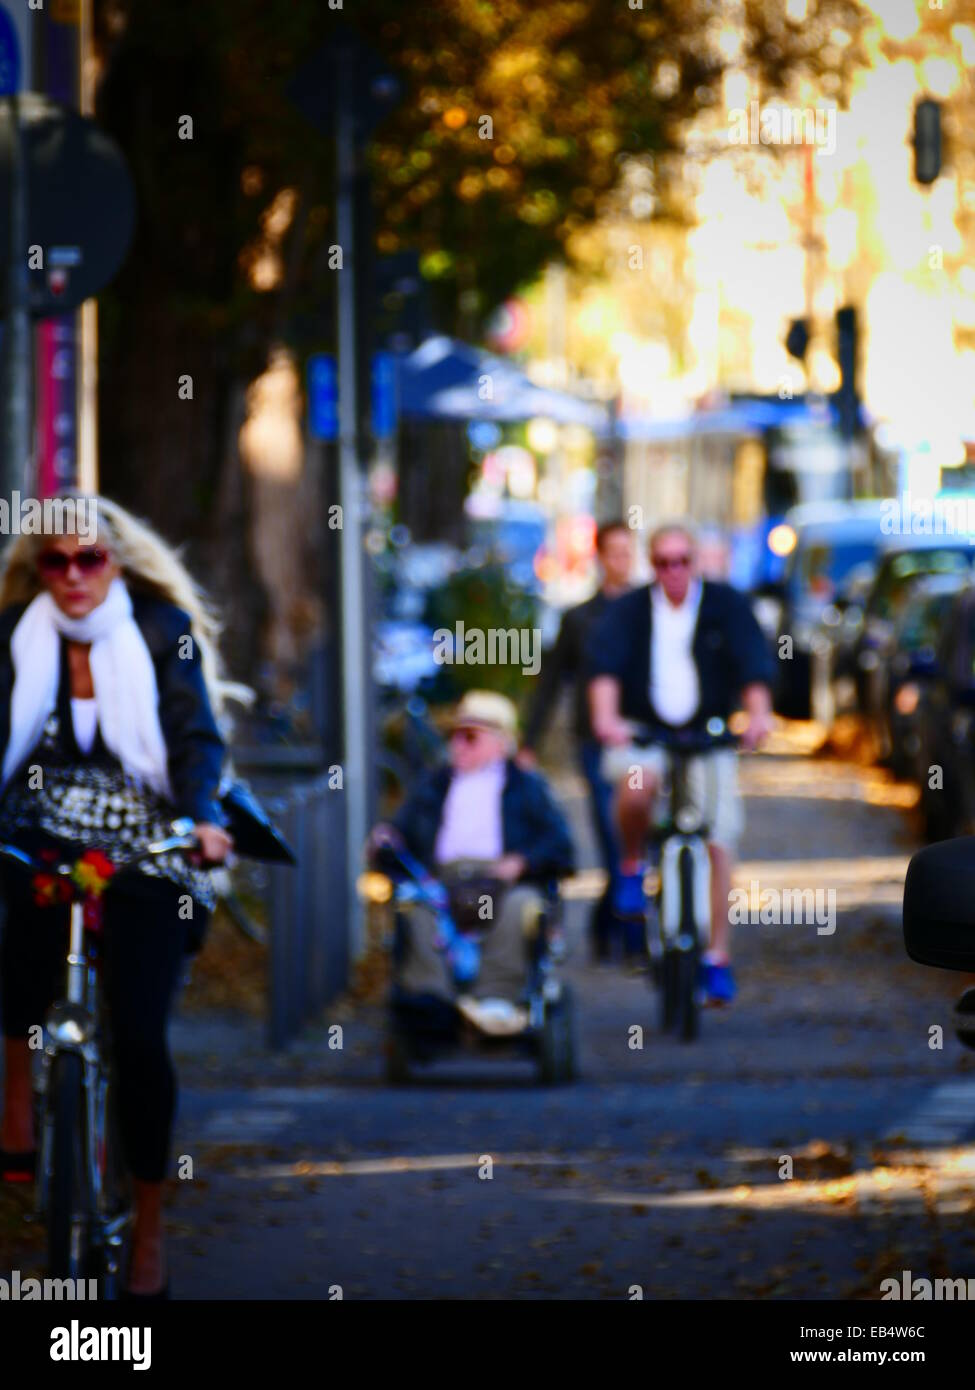 Anonymous out-focus Biker Bicycle on Bike Lane - Stock Image